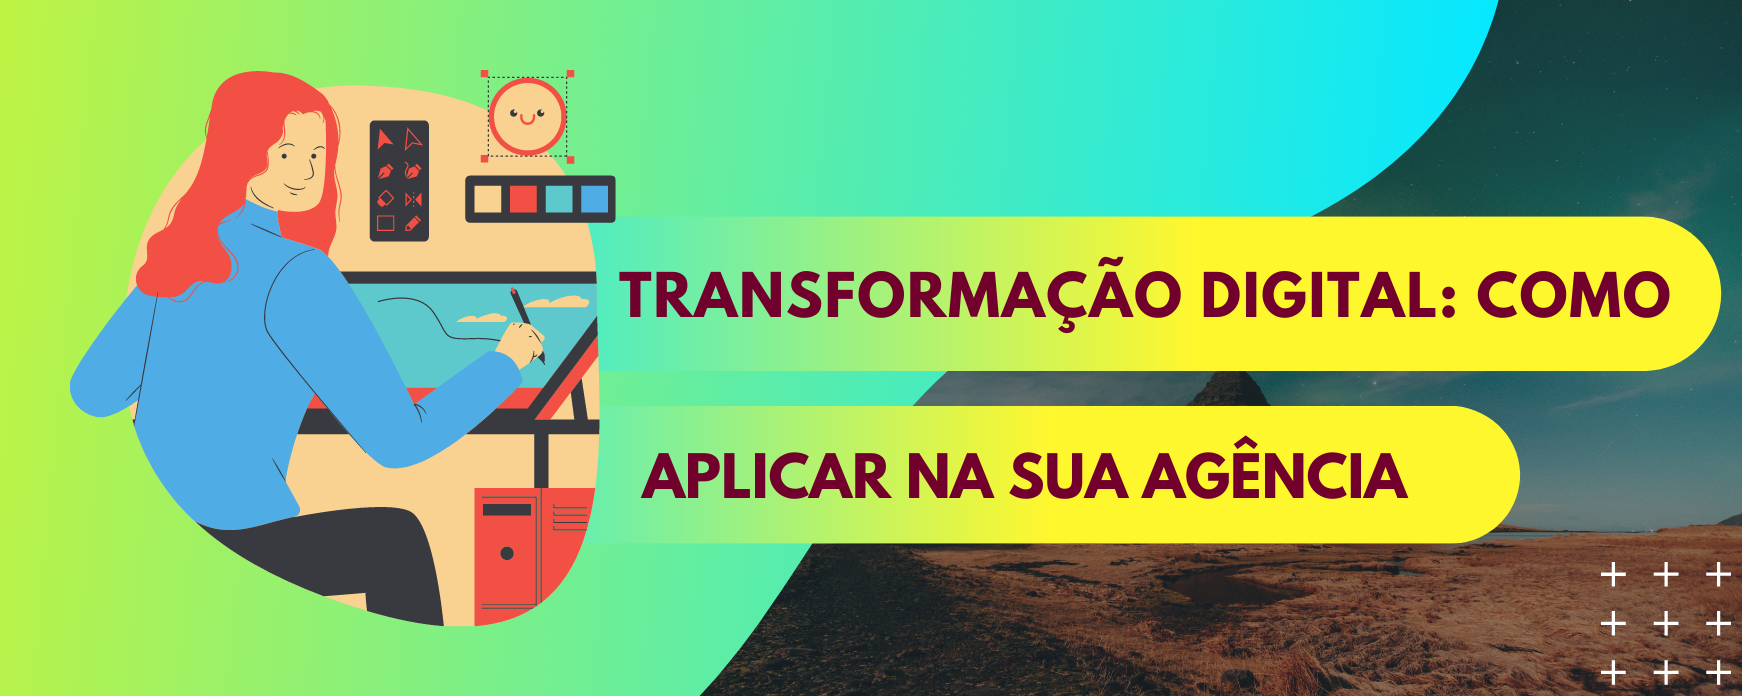 capa do blog post de transformação digital